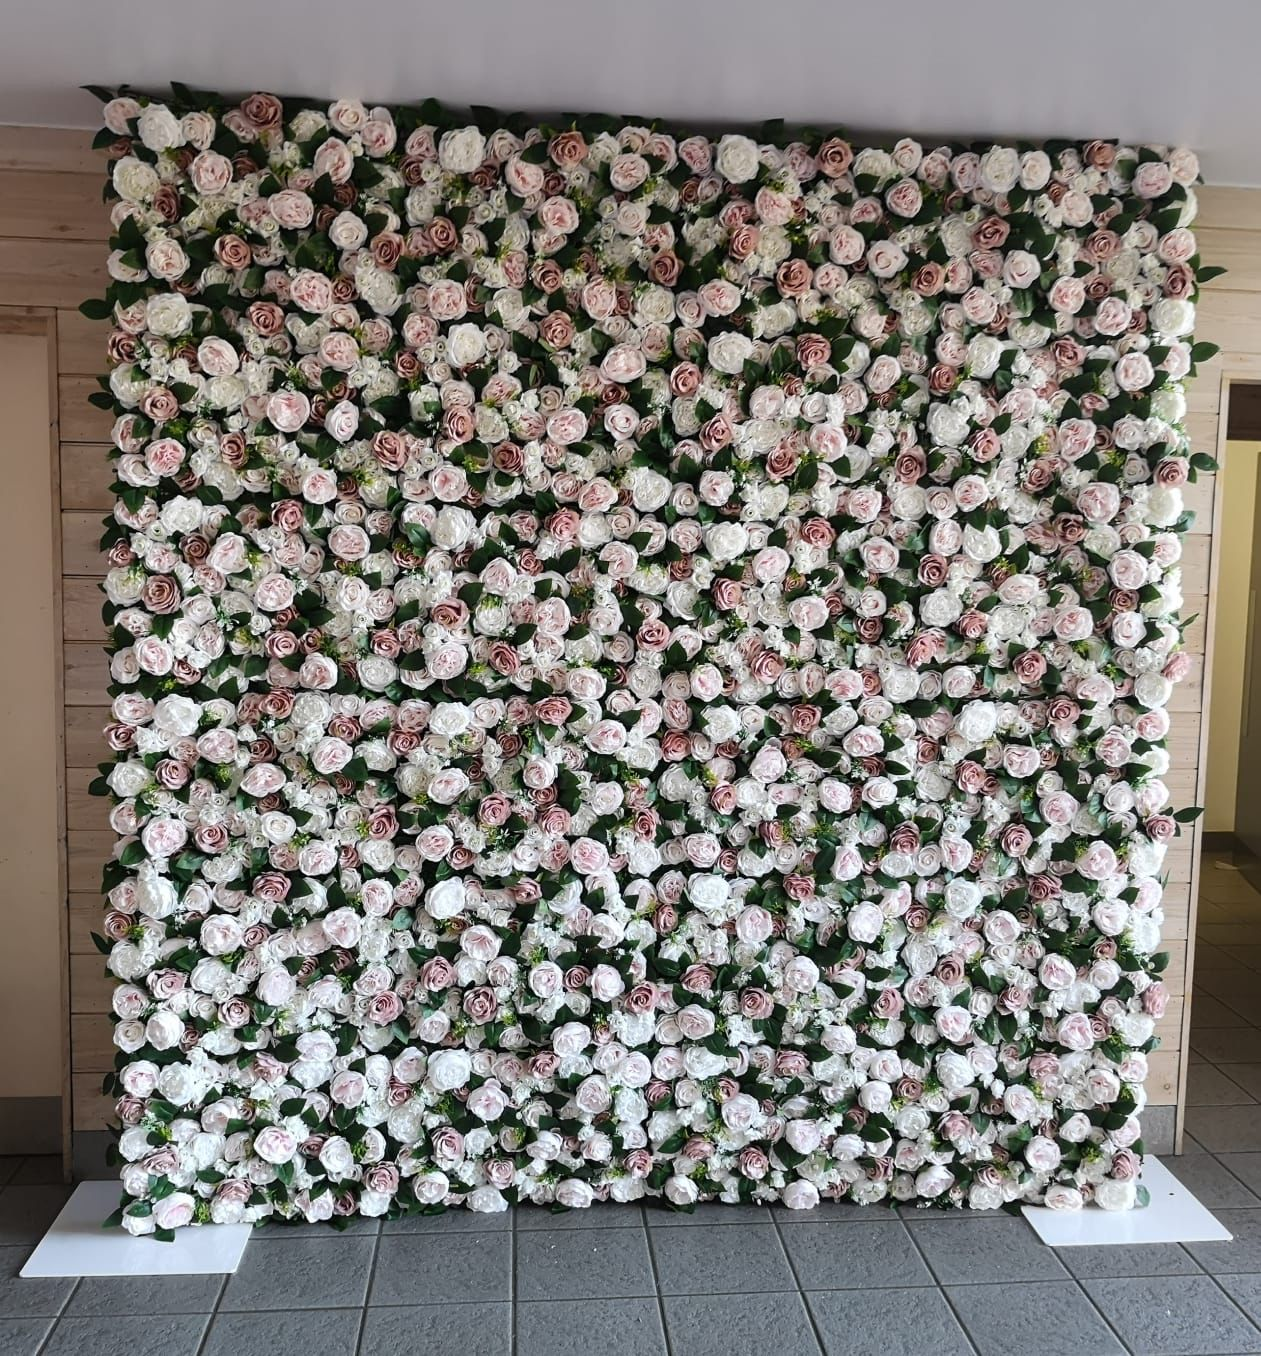 Wedding Flowers Suffolk: Flower Wall Backdrop For Hire In Suffolk And Surrounding